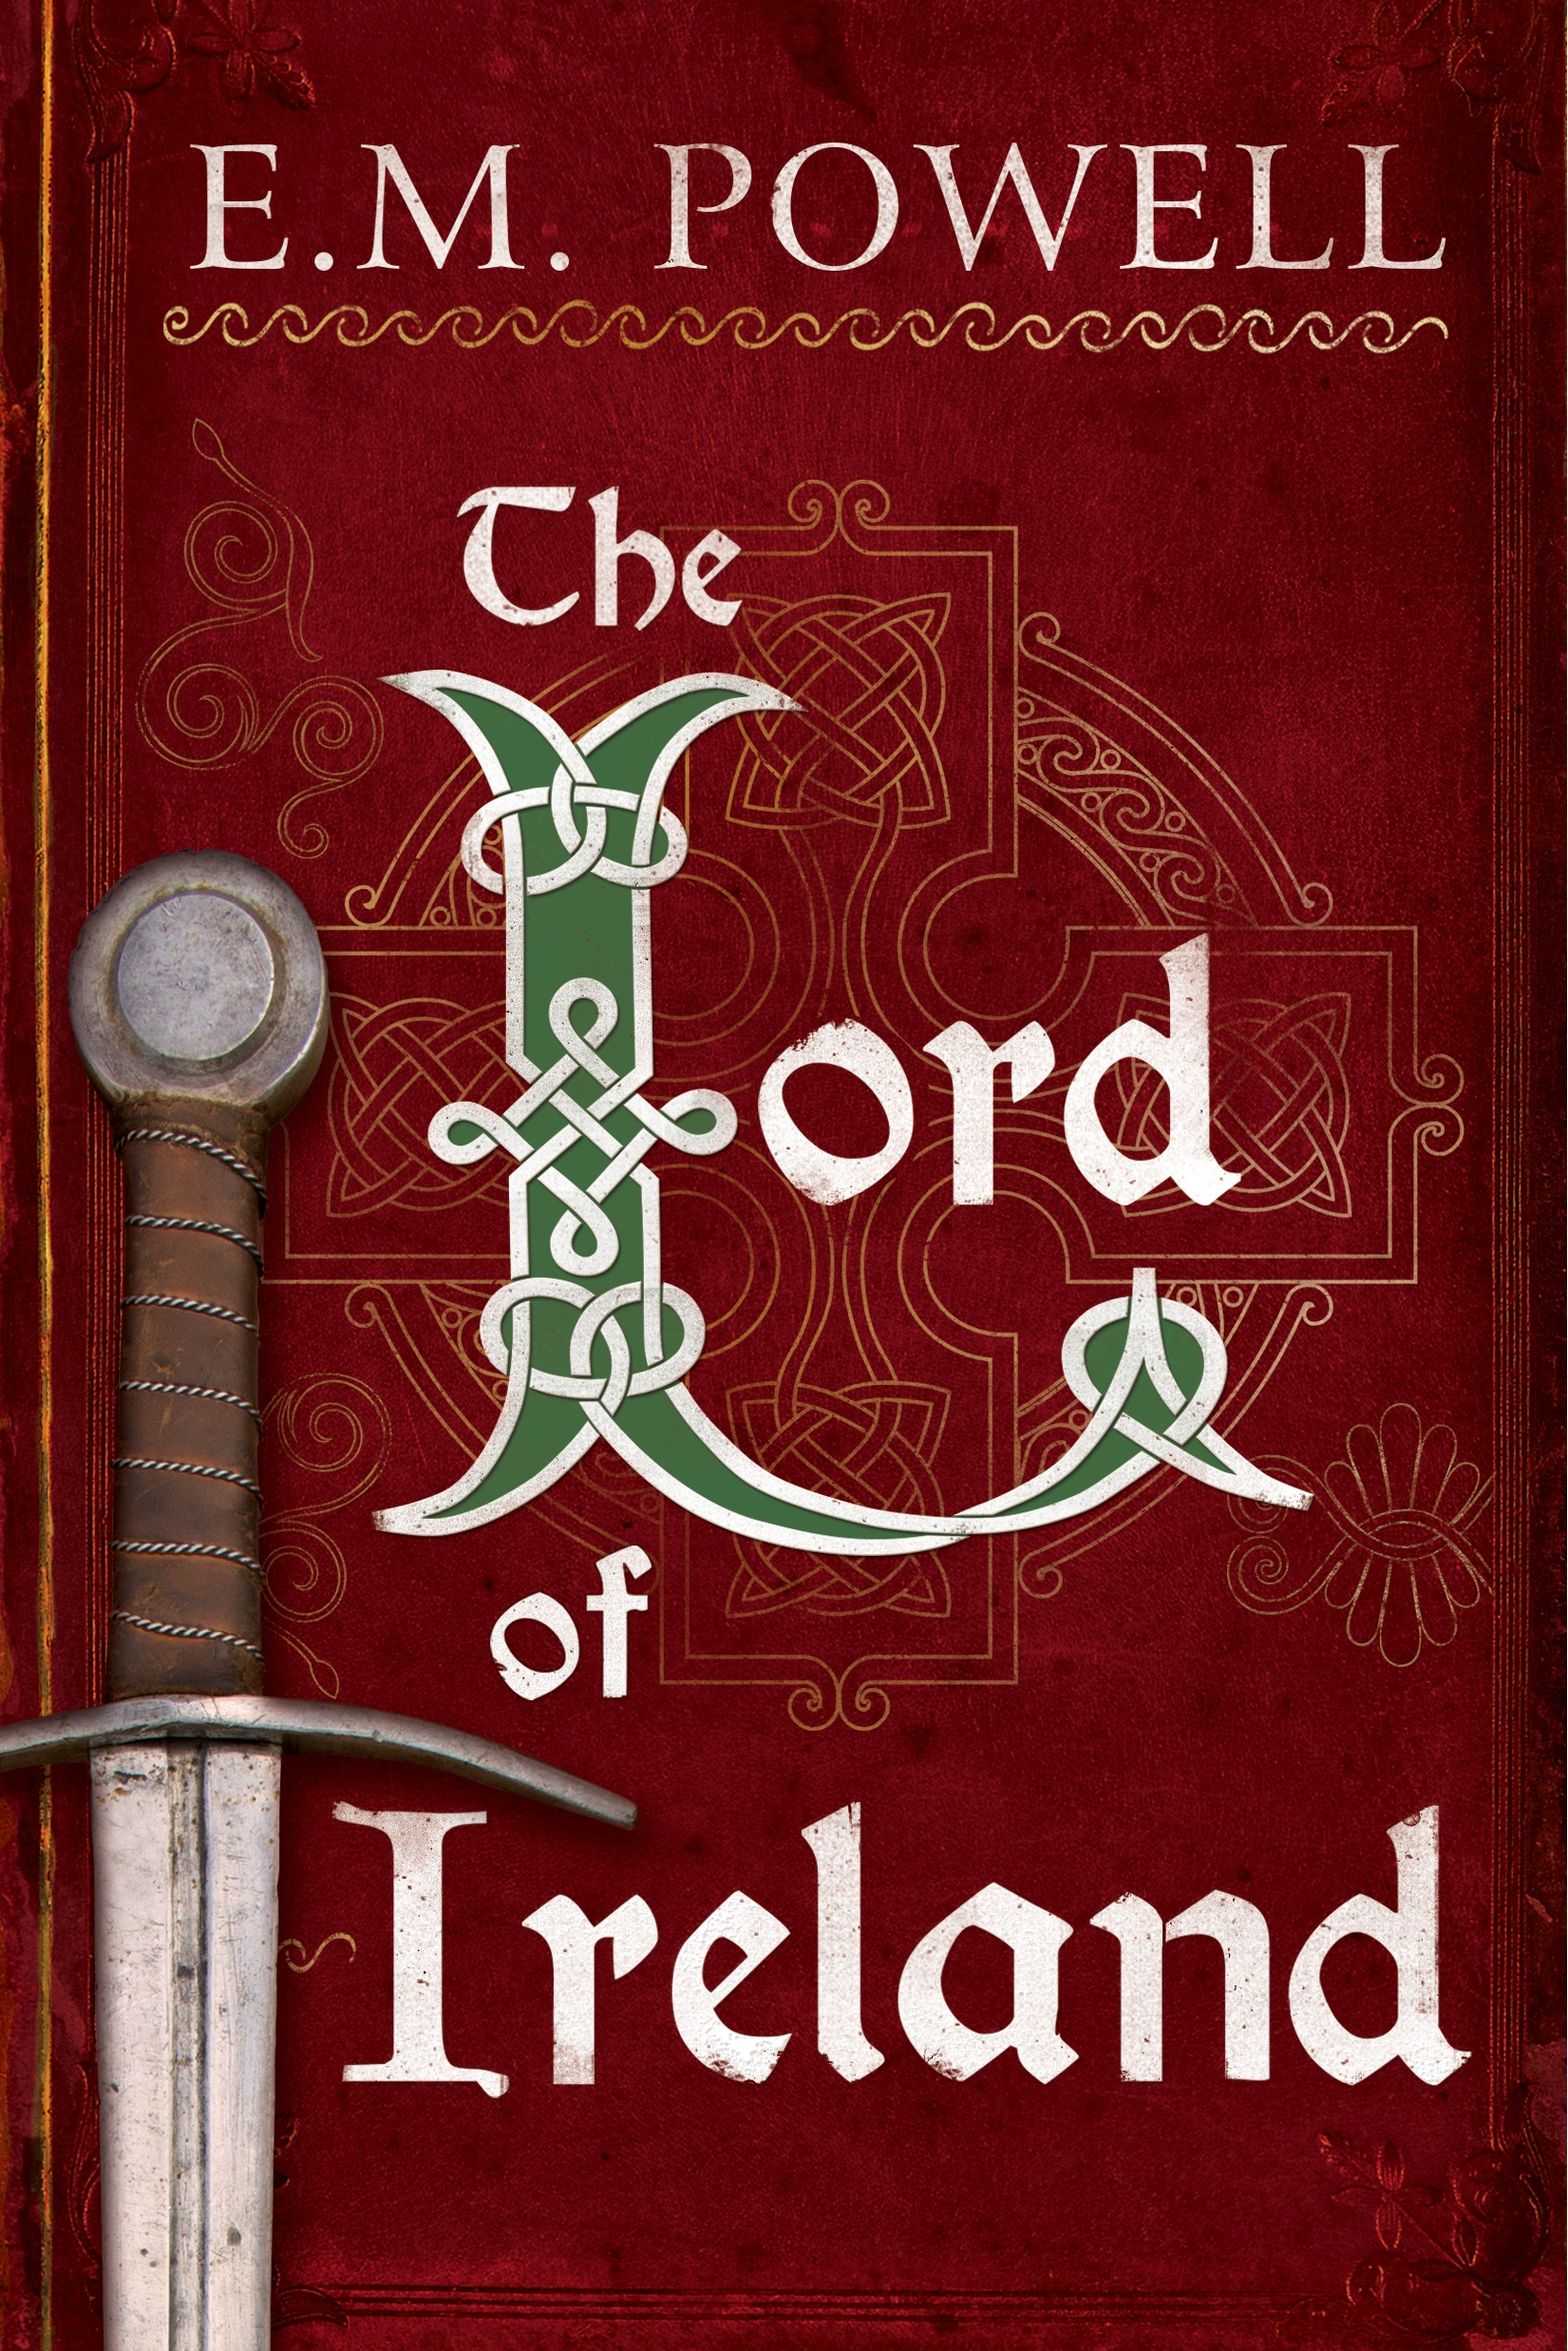 EM THE LORD OF IRELAND